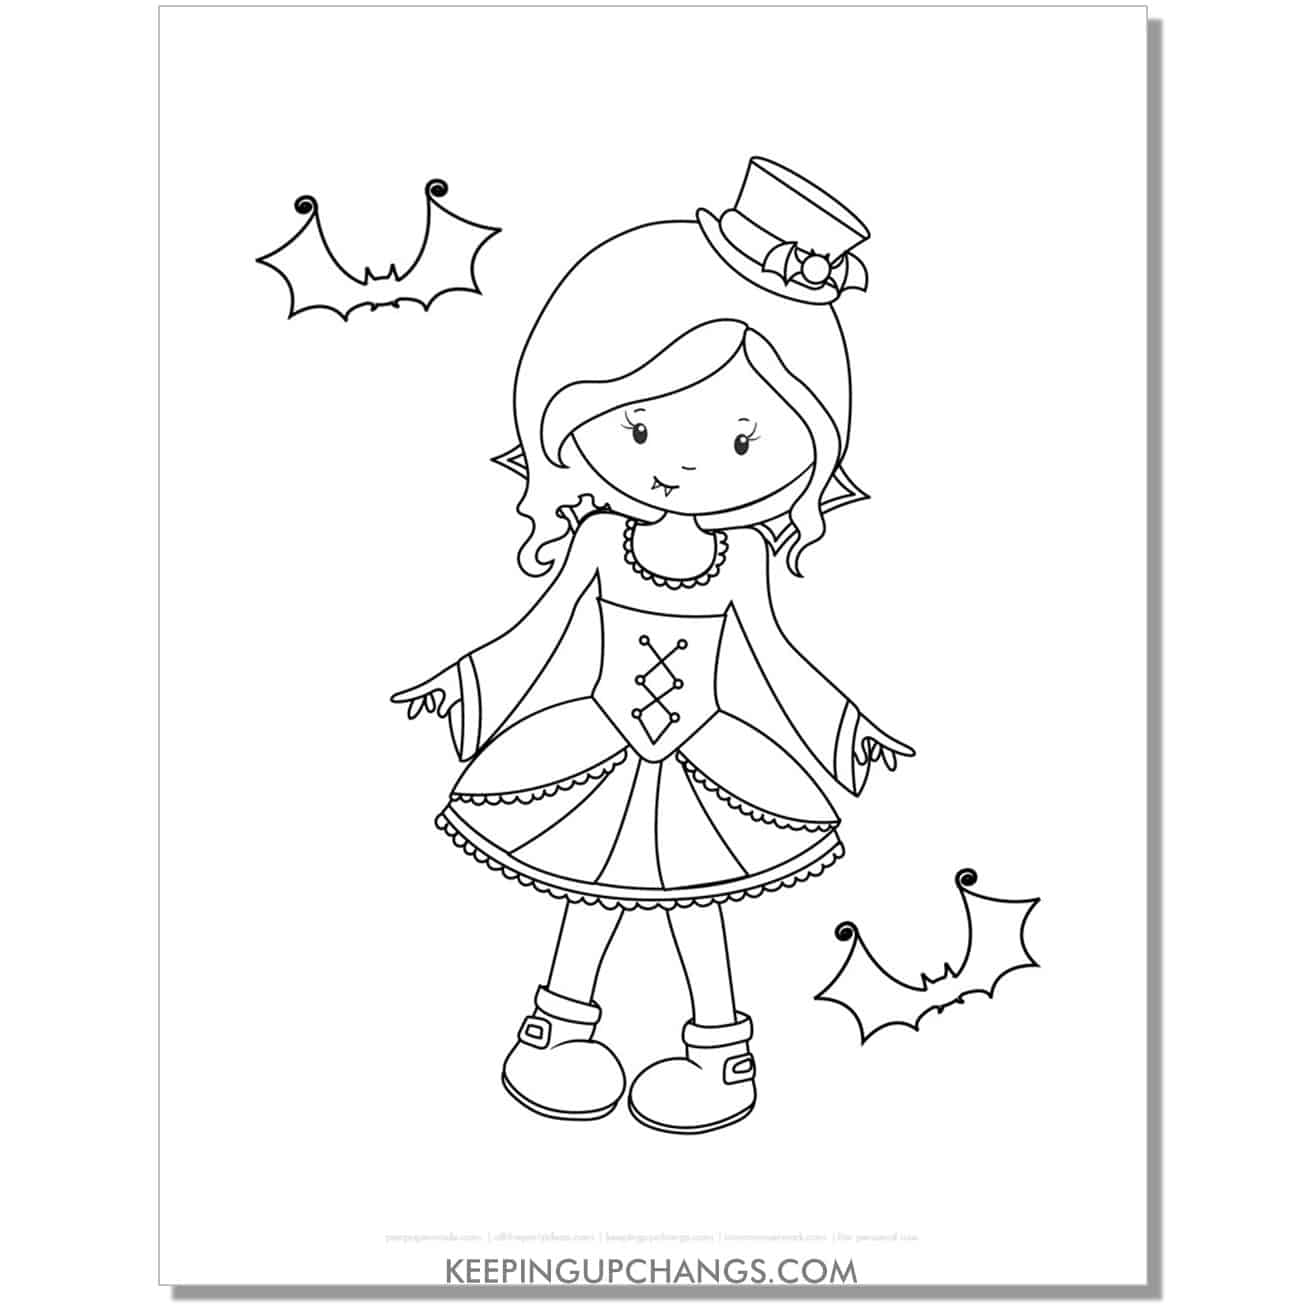 free vampire girl in dress coloring page.